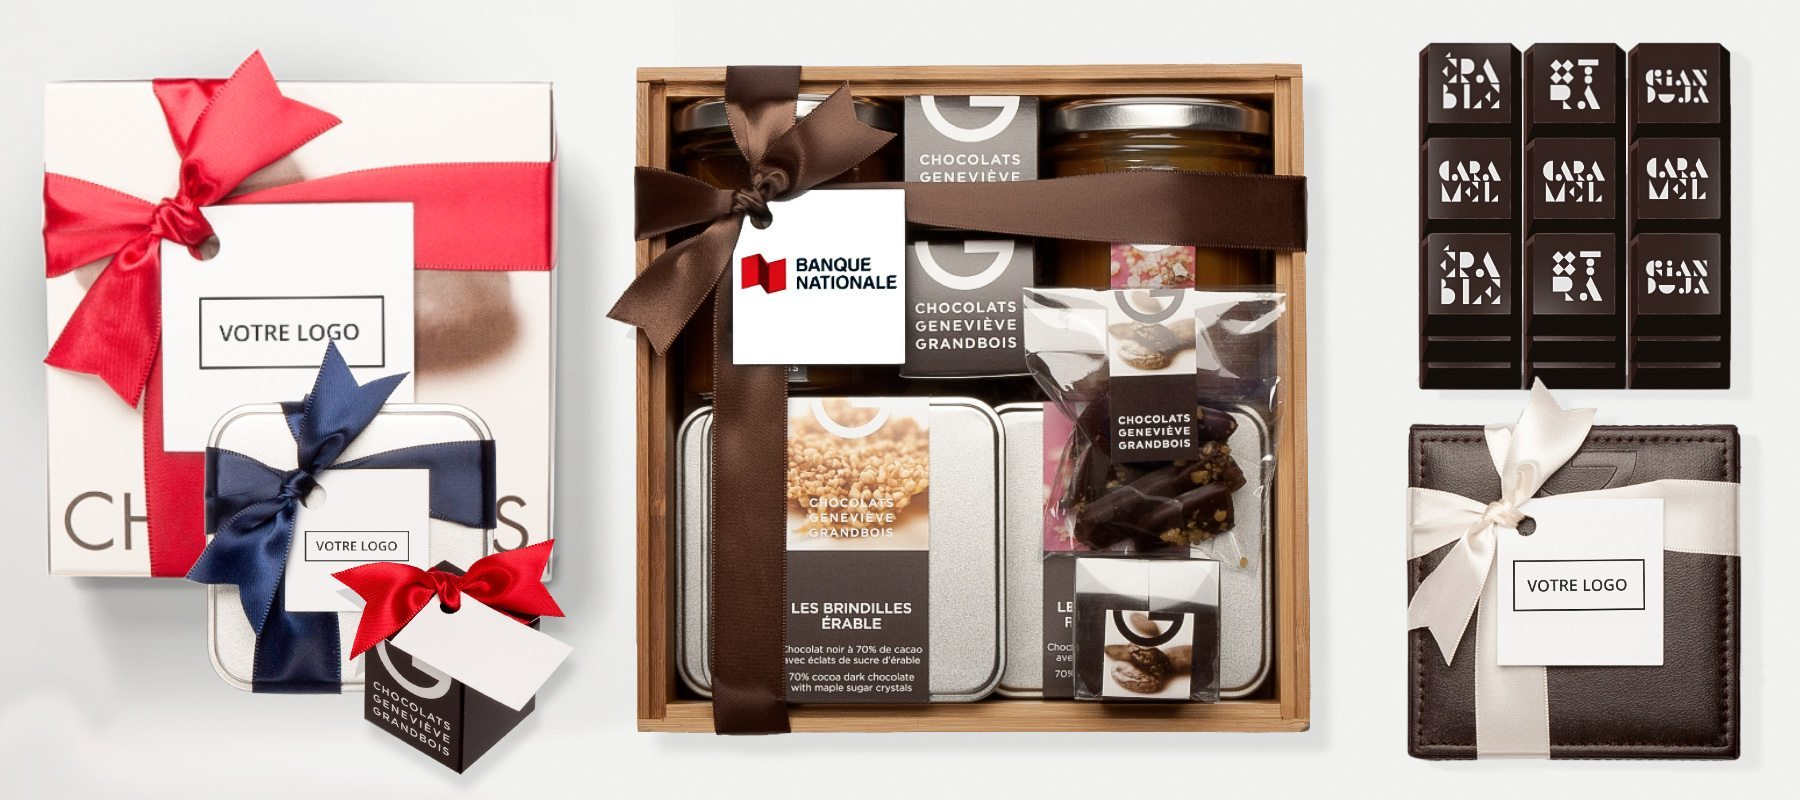 Corporate Gifts | Chocolats Geneviève Grandbois